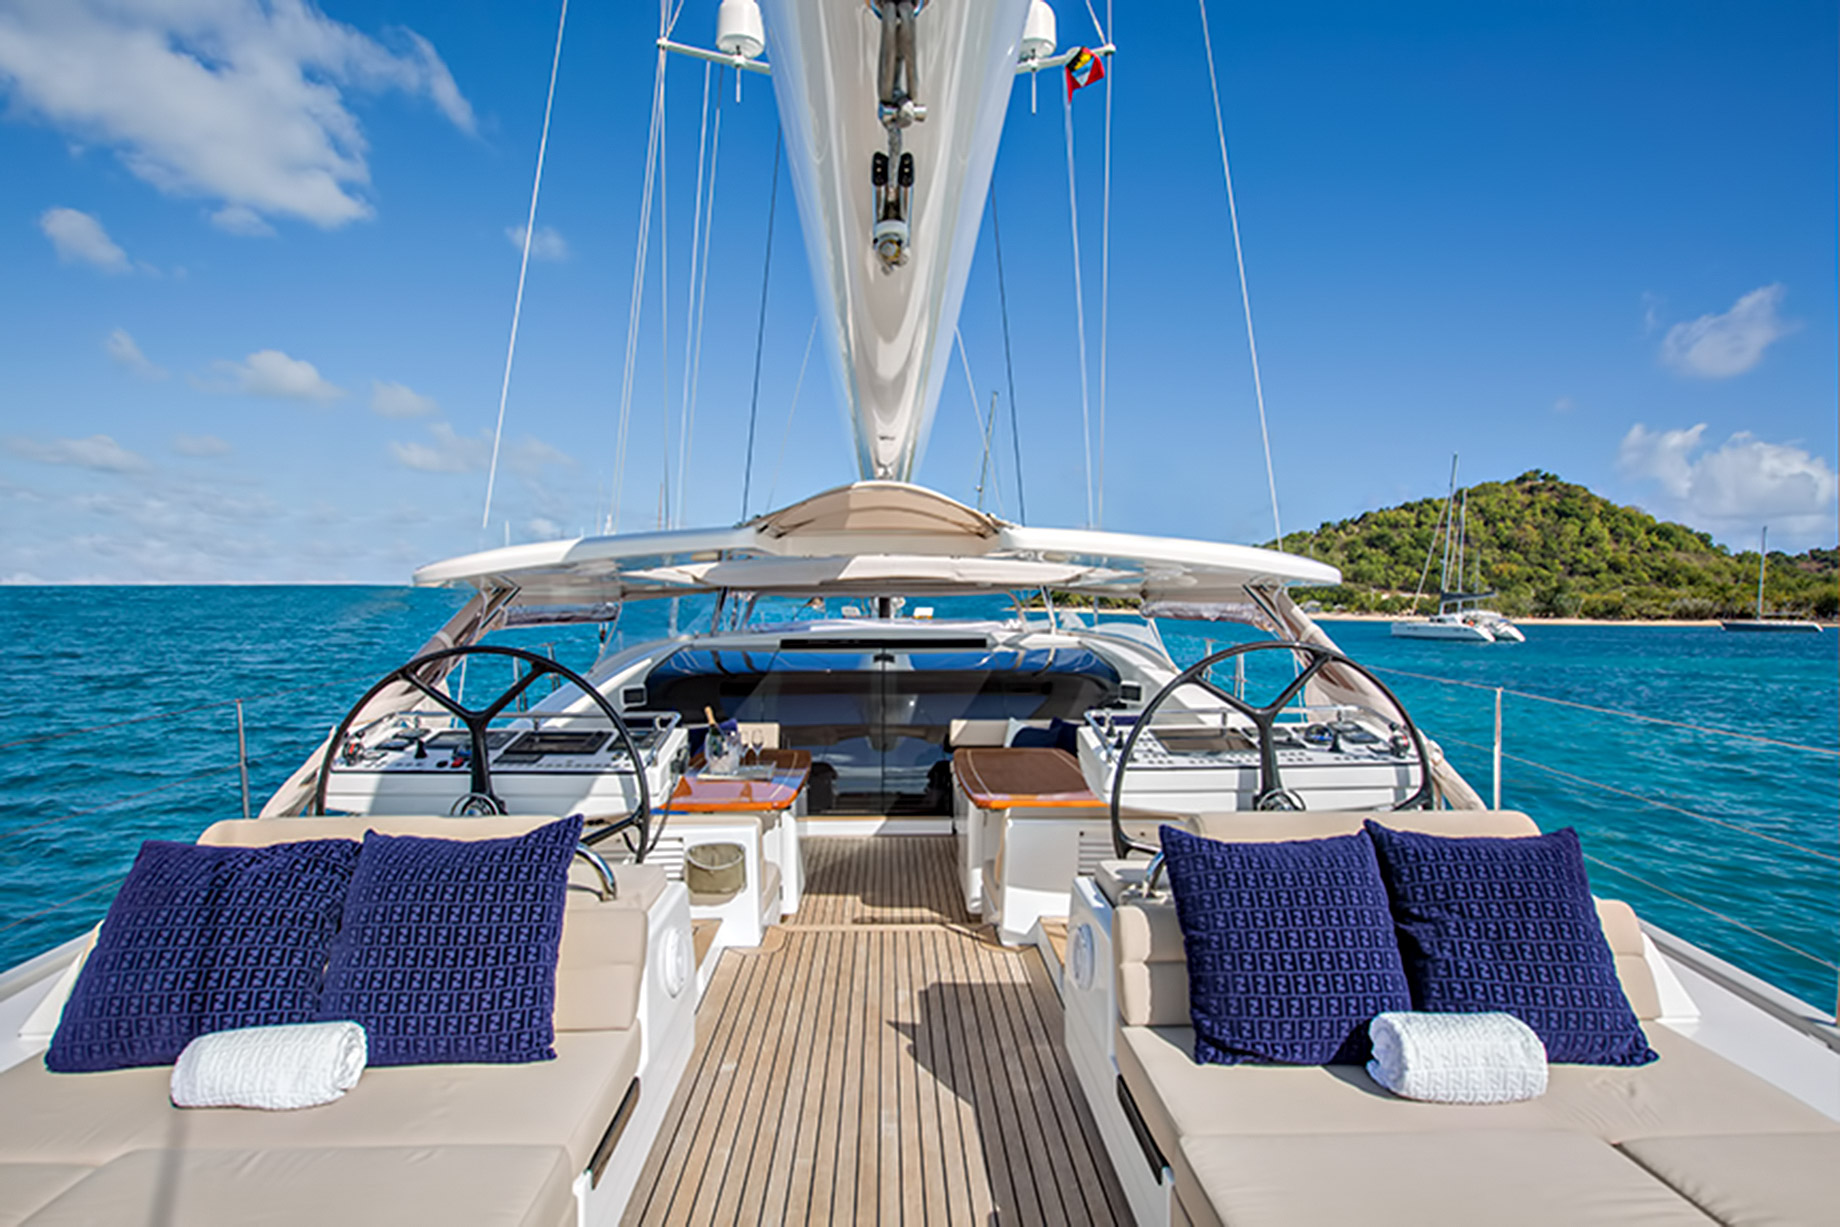 Spacious Deck Area – Oyster 100 Penelope – Step Inside A Luxury British Sailing Yacht